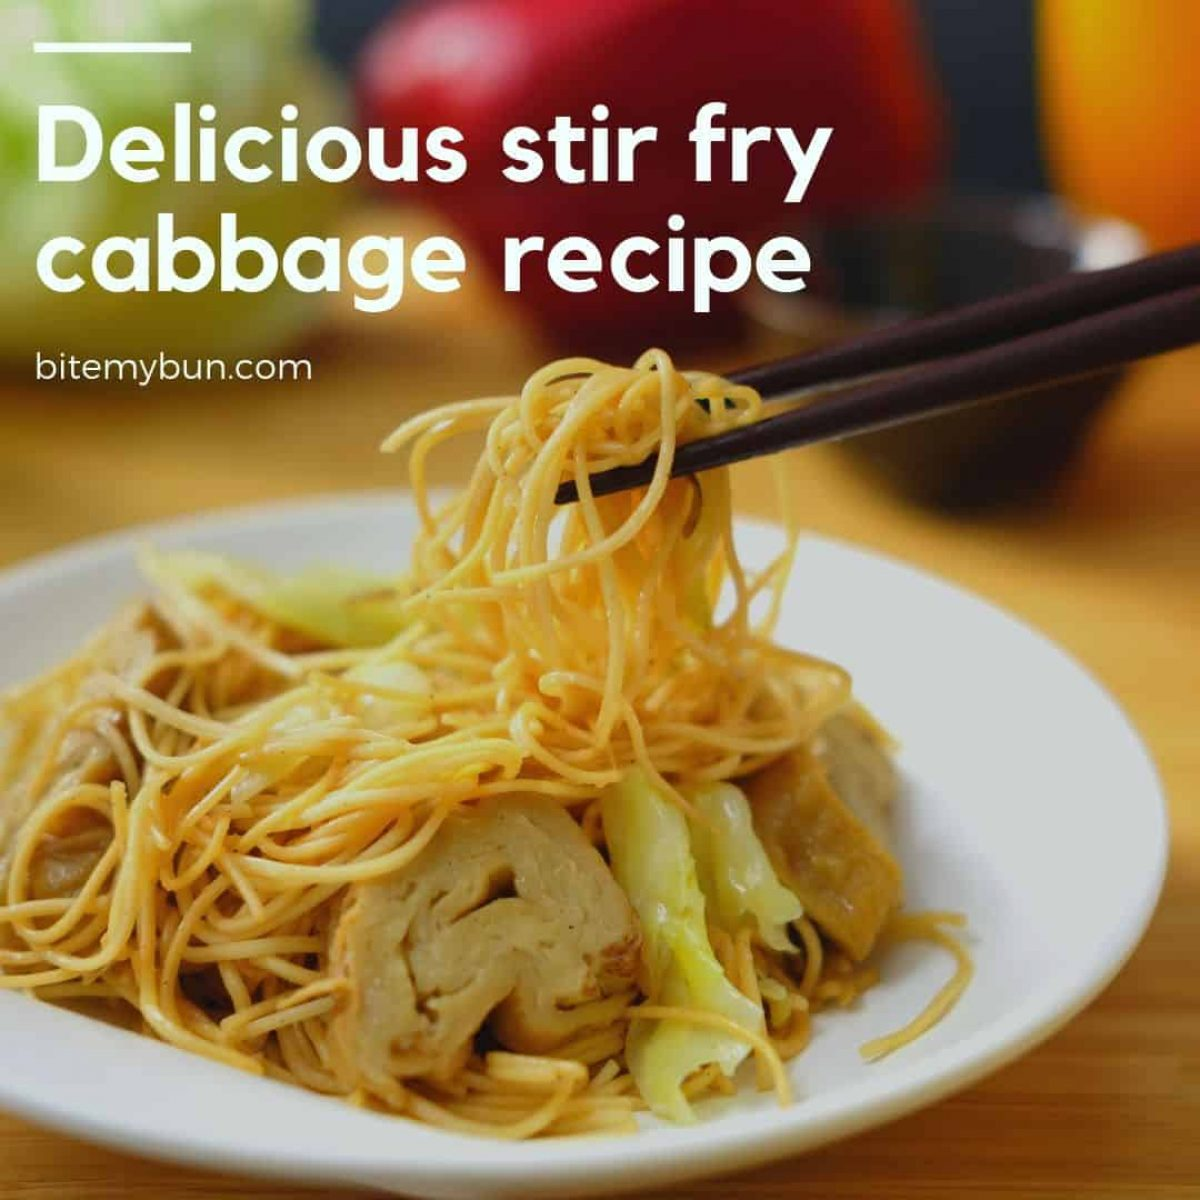 Japanese Stir Fry Cabbage Recipe Make It With These 9 Ingredients